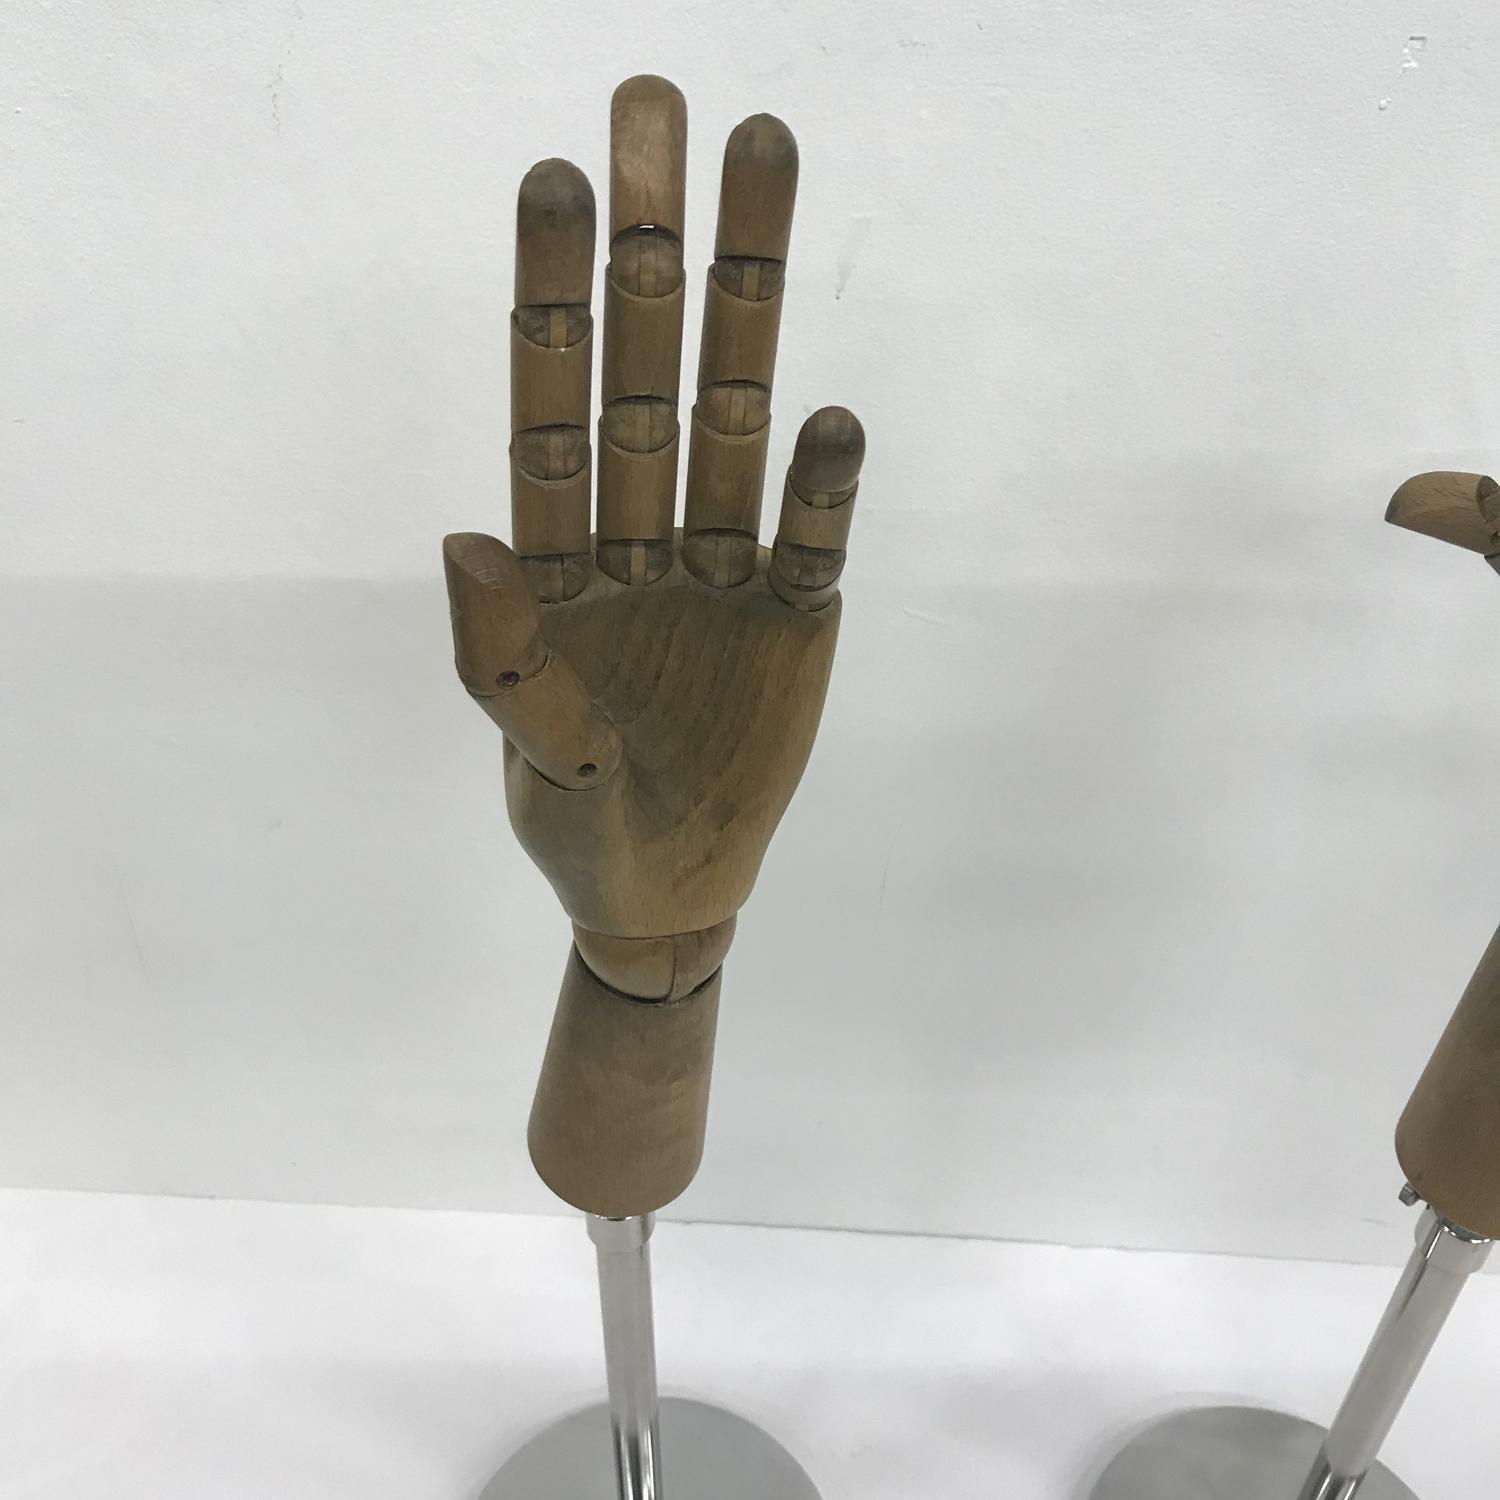 Wooden hand gloves shop display